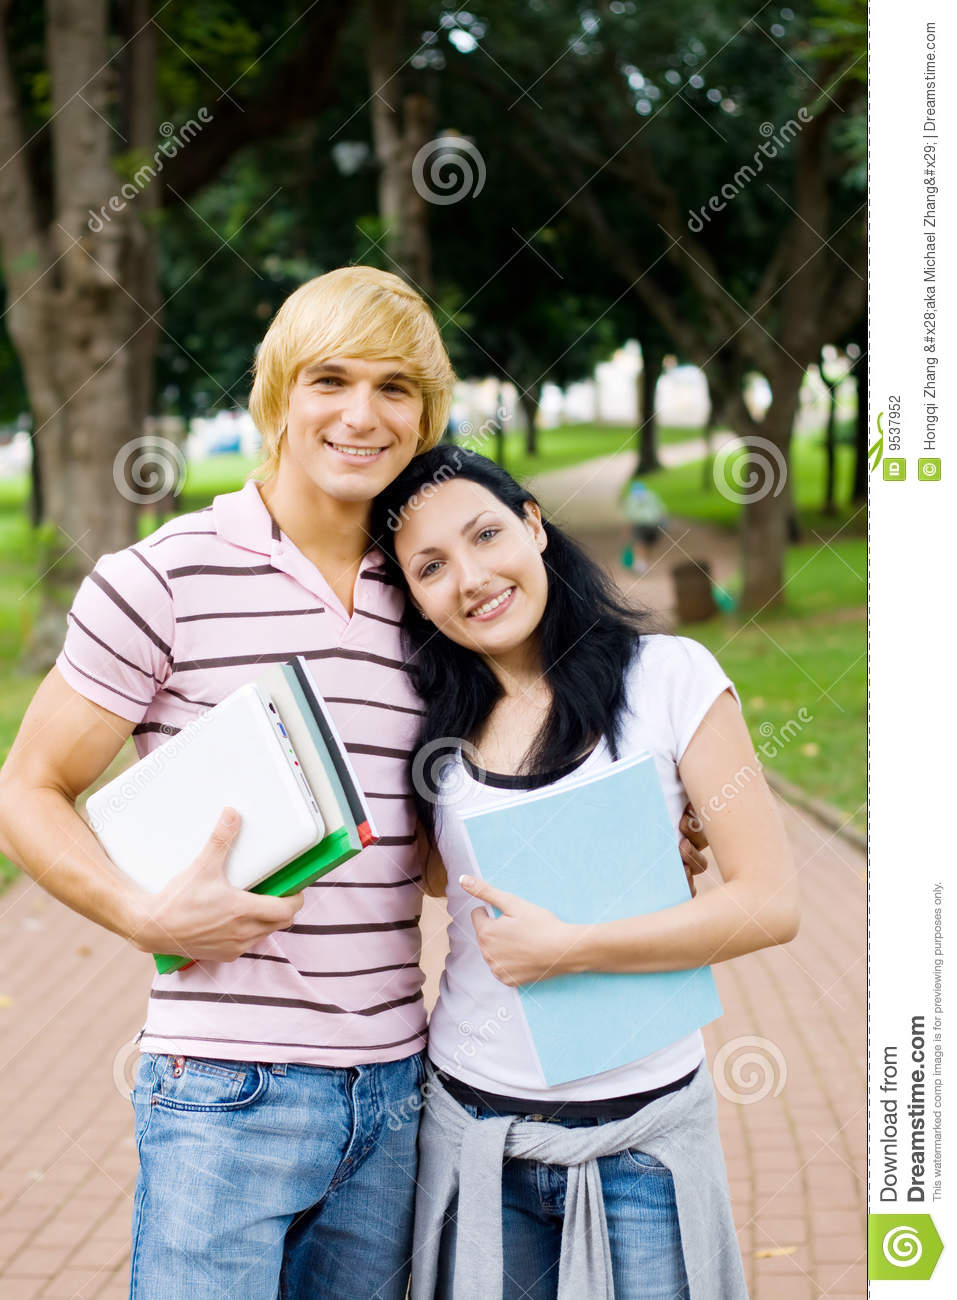 College lovers